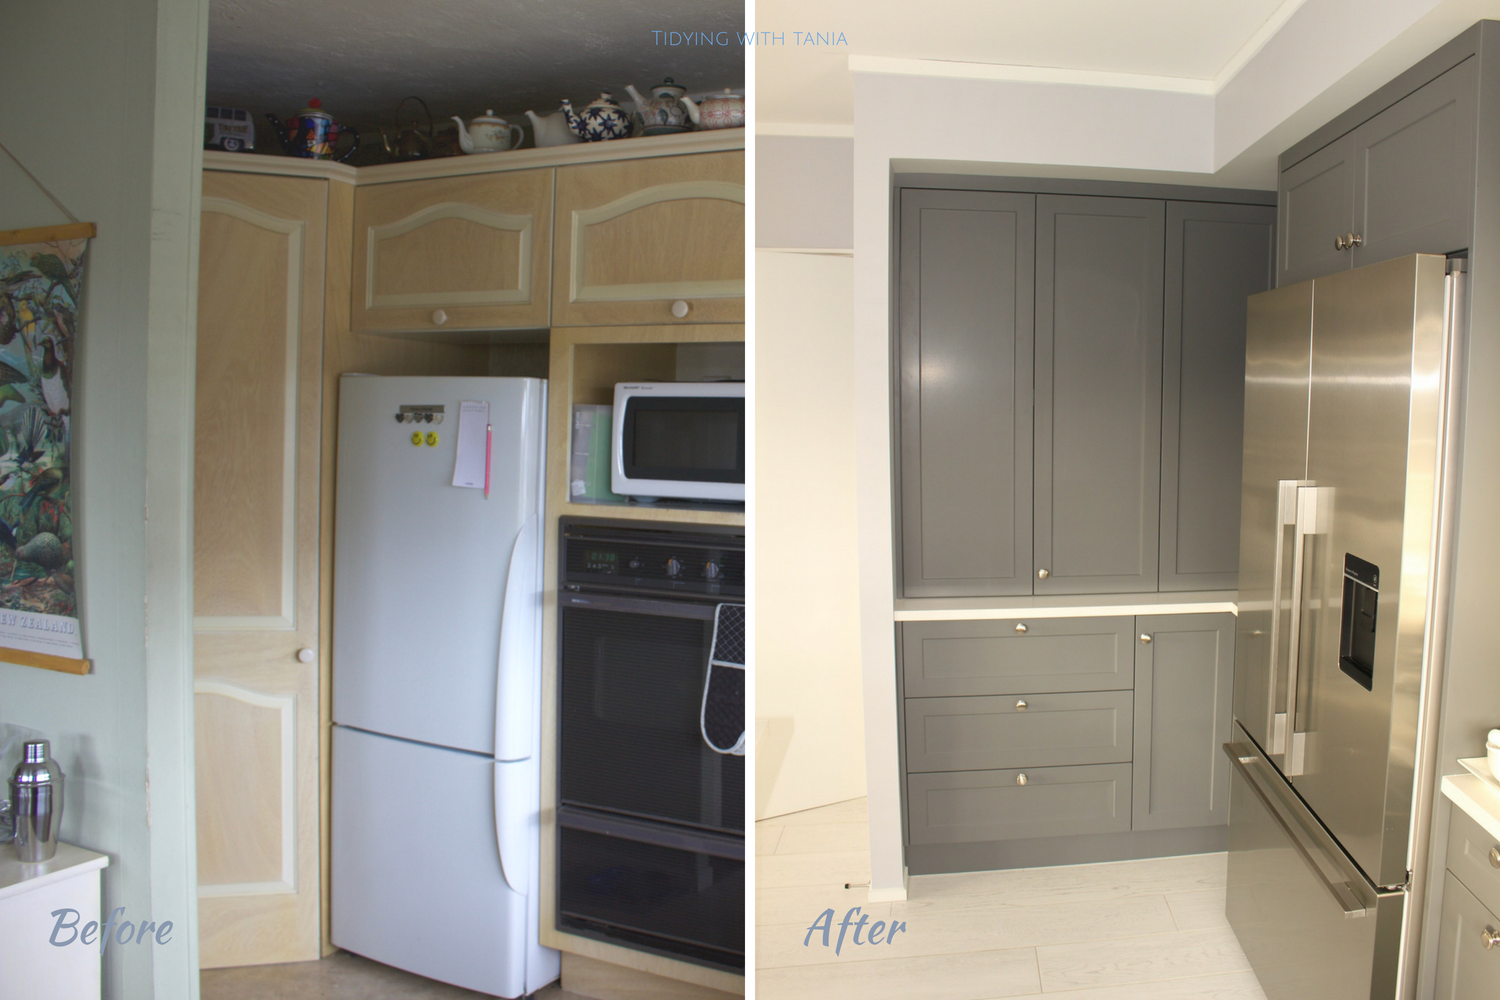 pantry_before_after_renovation.png